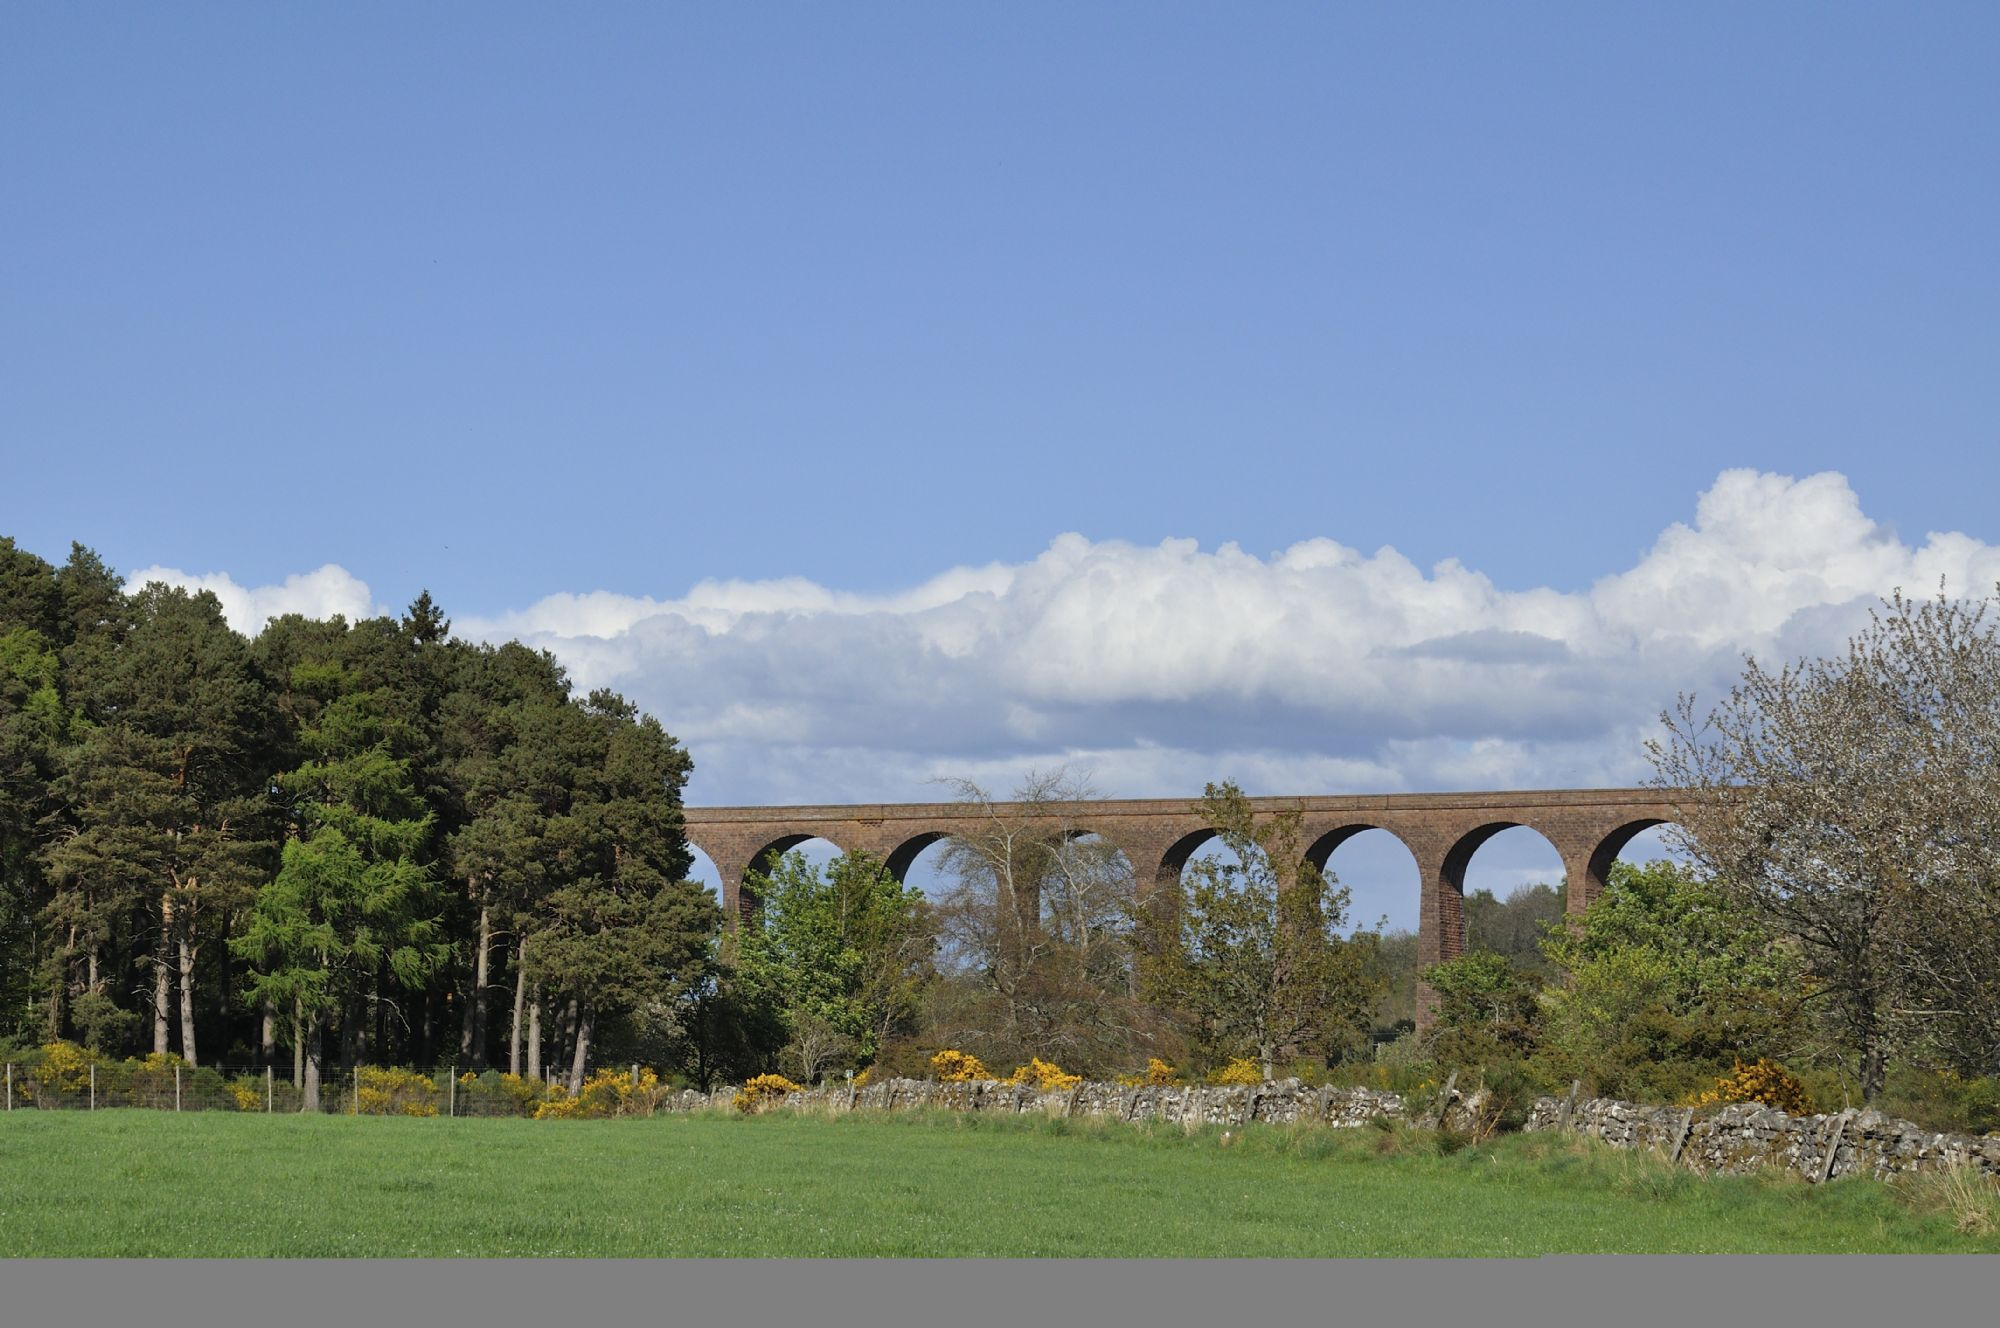 Culloden Viaduct at distance